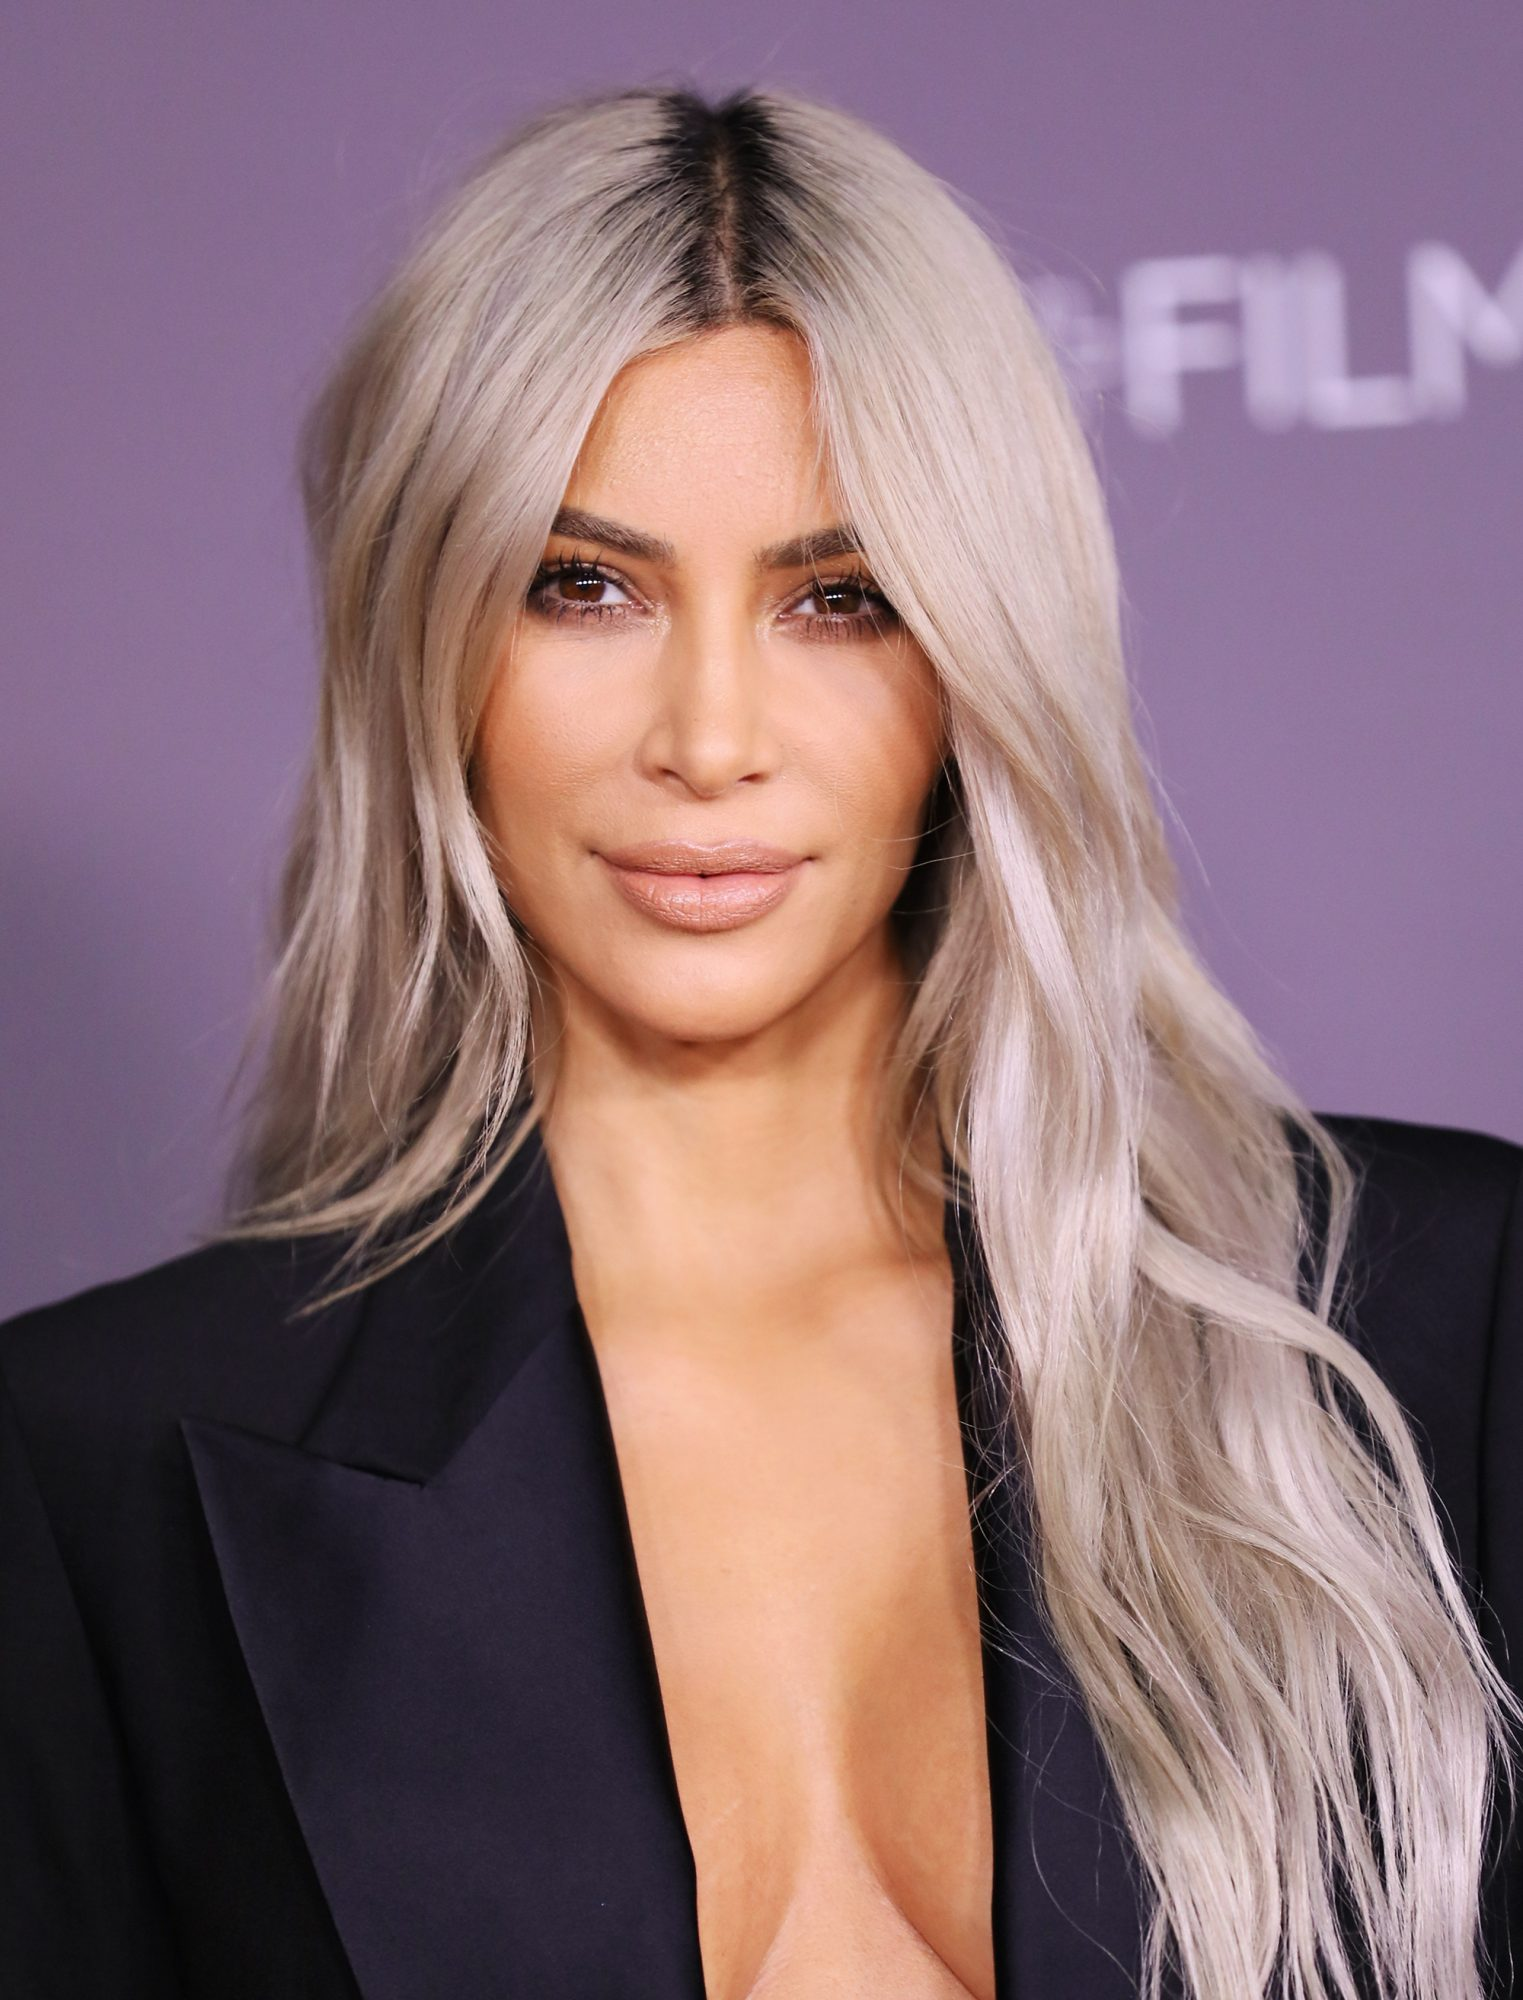 Kim Kardashian West Has a Good Reason for Not Inviting Her Surrogate to Her Baby Shower